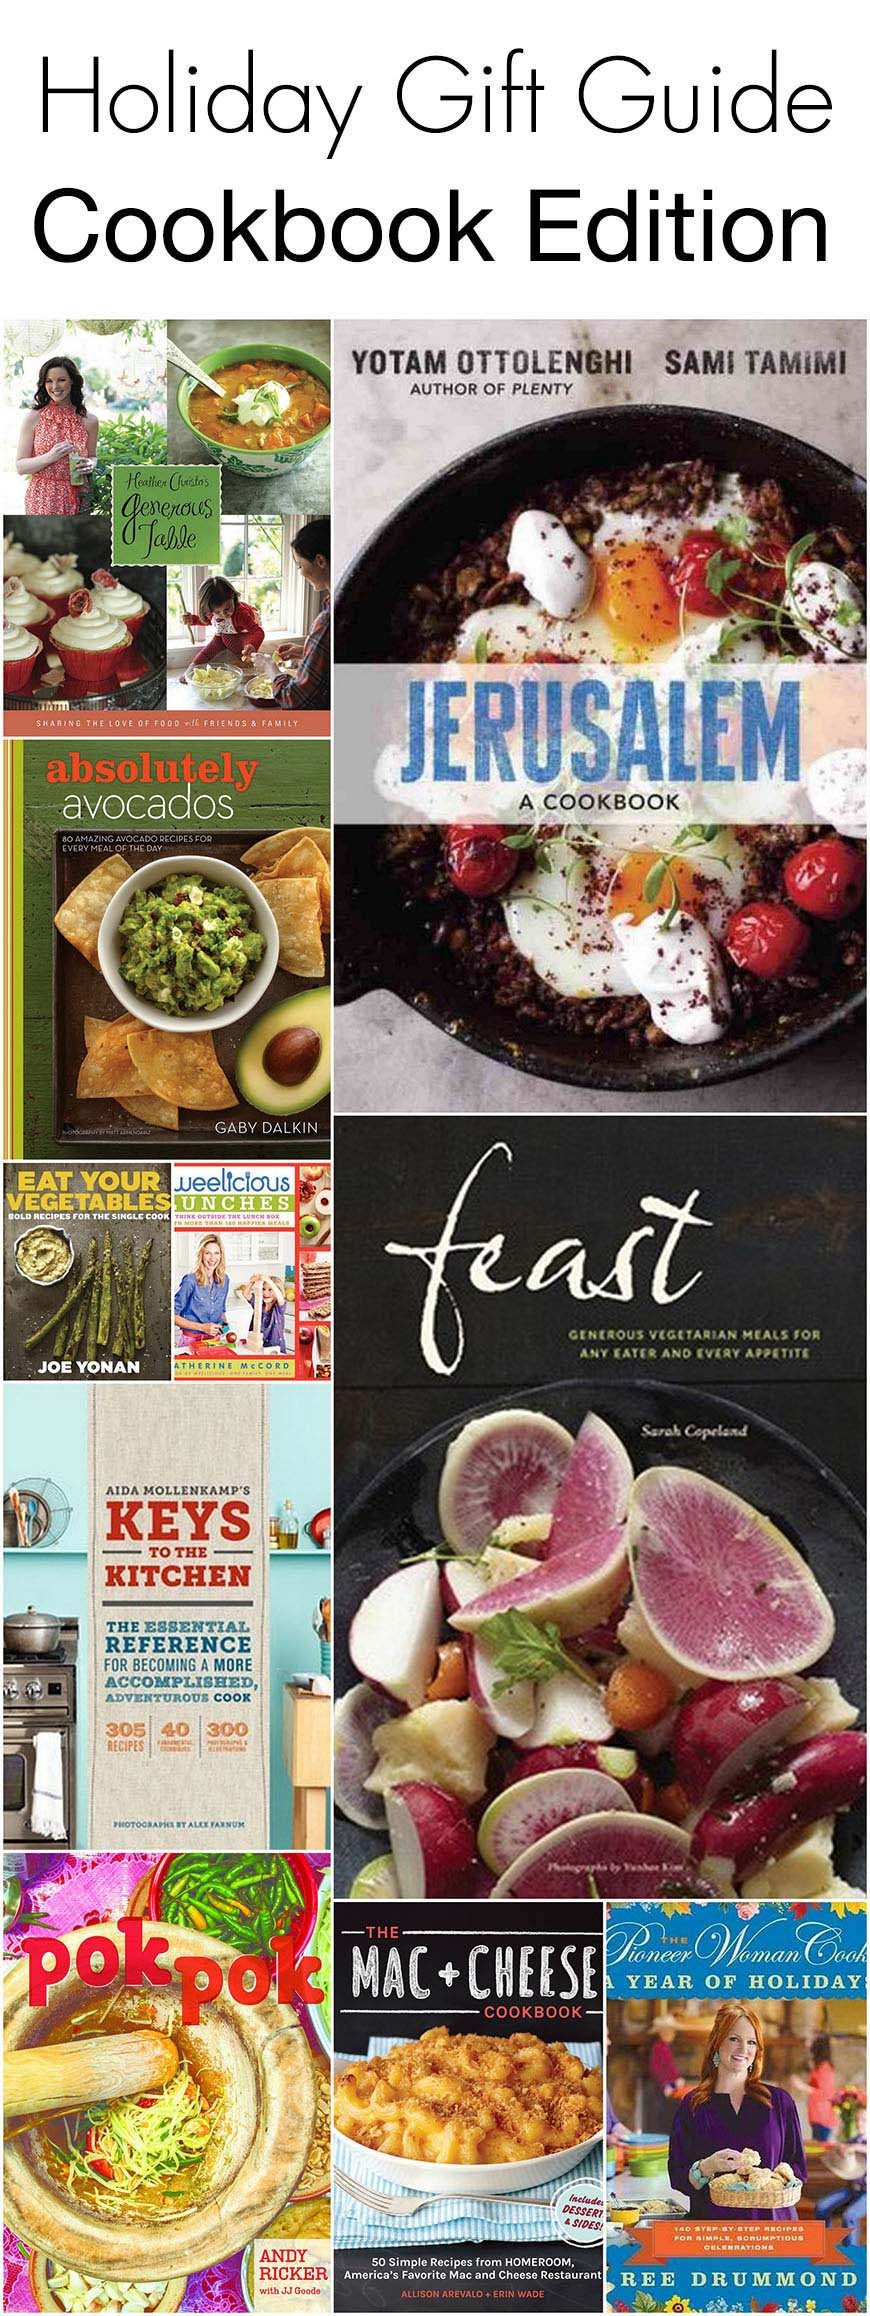 Holiday Gift Guide - Cookbook Edition!